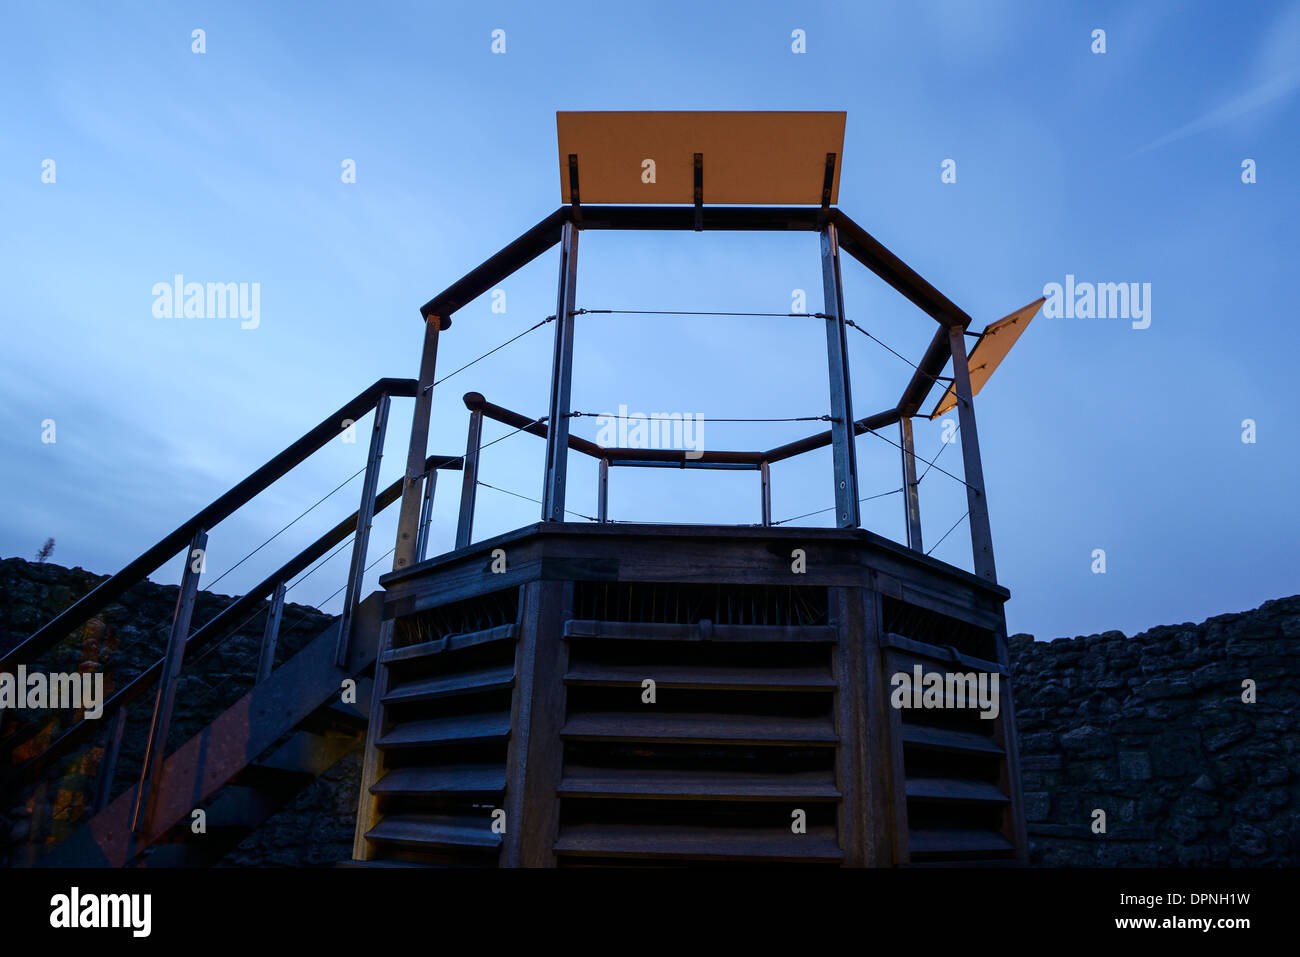 The viewing deck at the top of the tower at Oxford castle - Stock Image